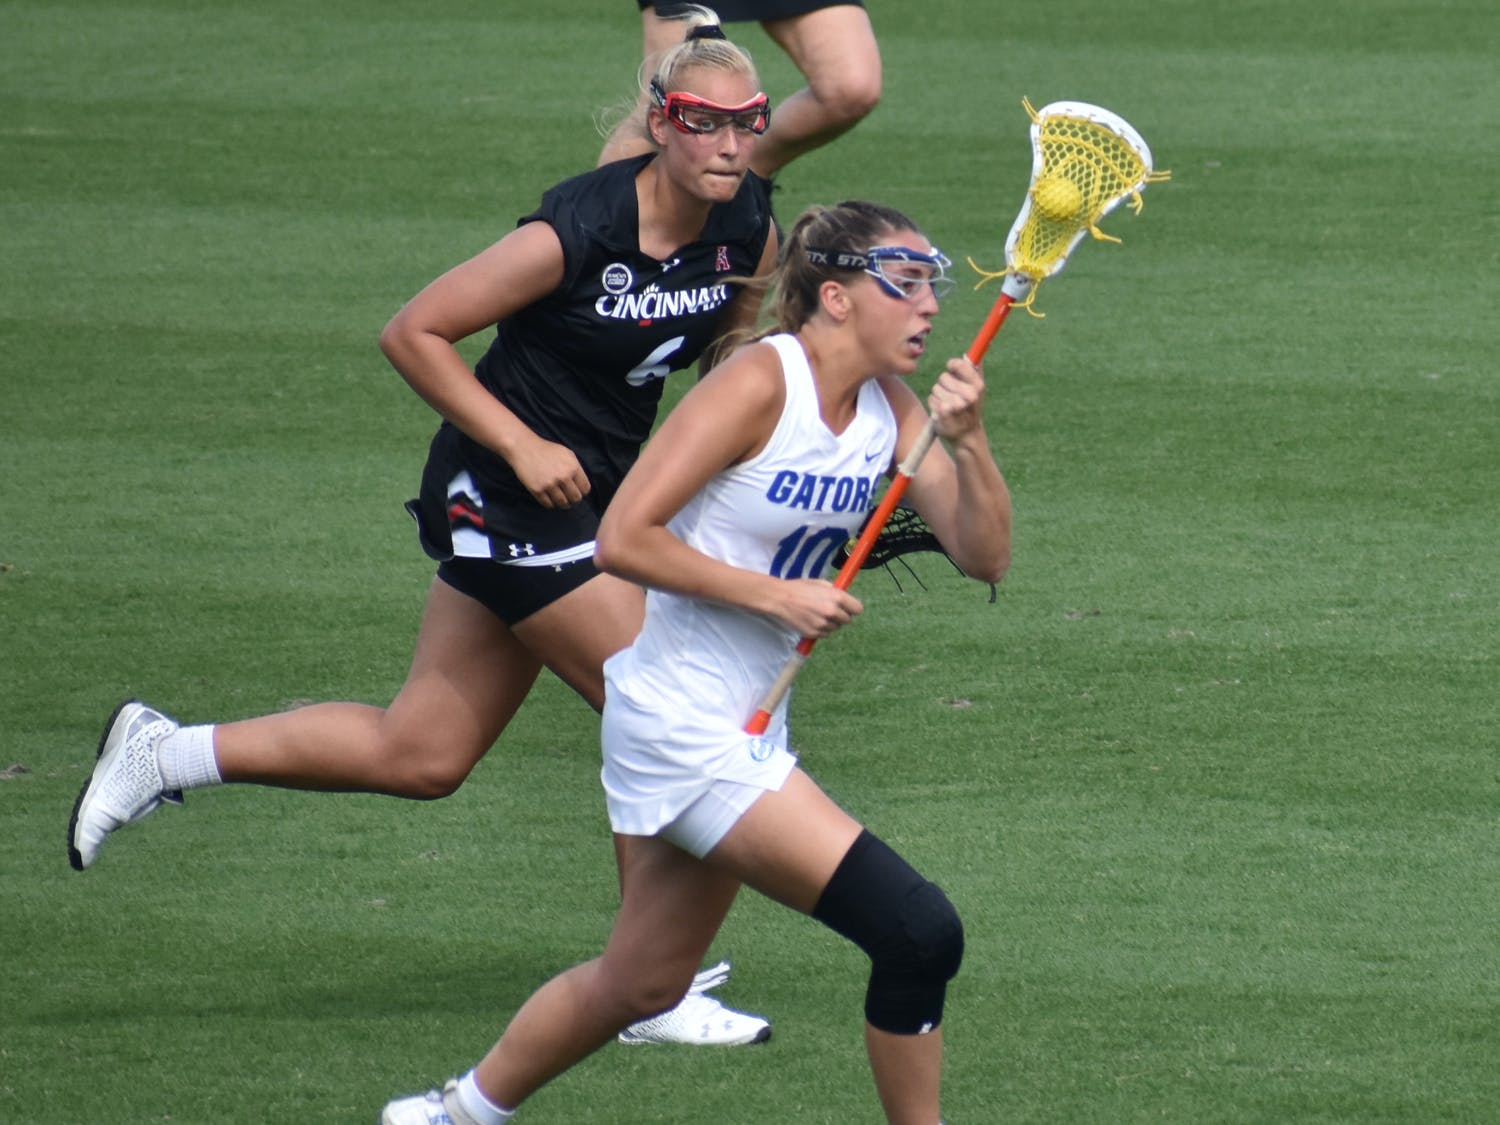 The No. 10 Gators took down the Old Dominion Monarchs in a 17-6 victory Friday. Photo from UF-Cincinnati game March 26.